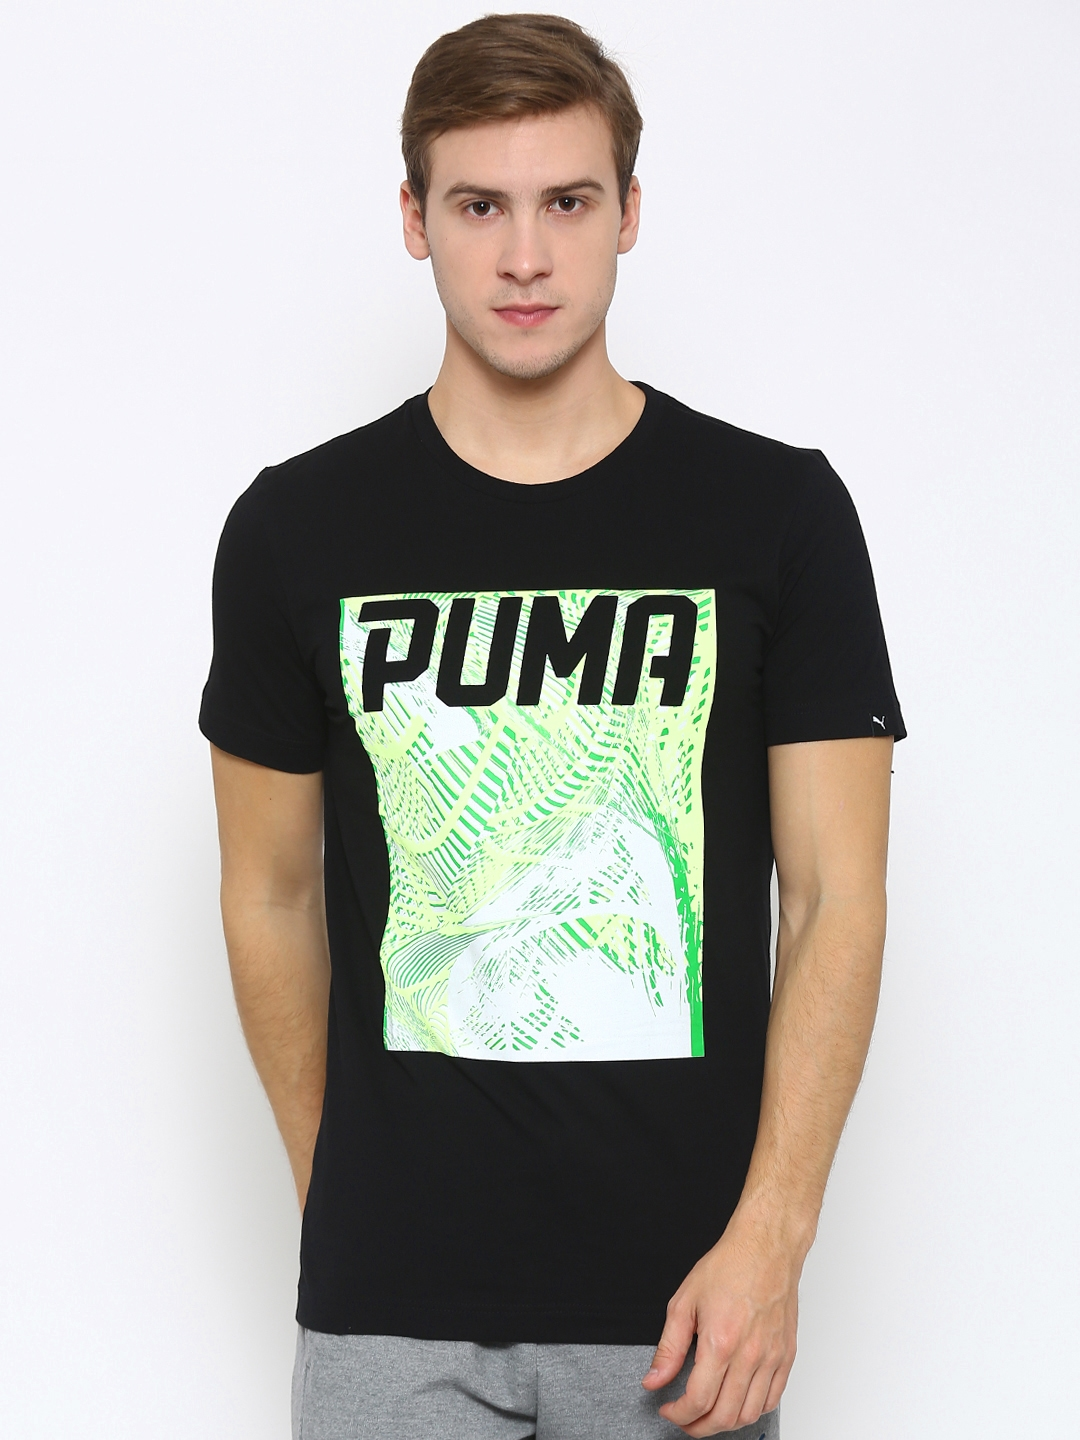 2d59a4aace4 Buy Puma Black Dynamo Printed Slim Fit T Shirt - Tshirts for Men ...